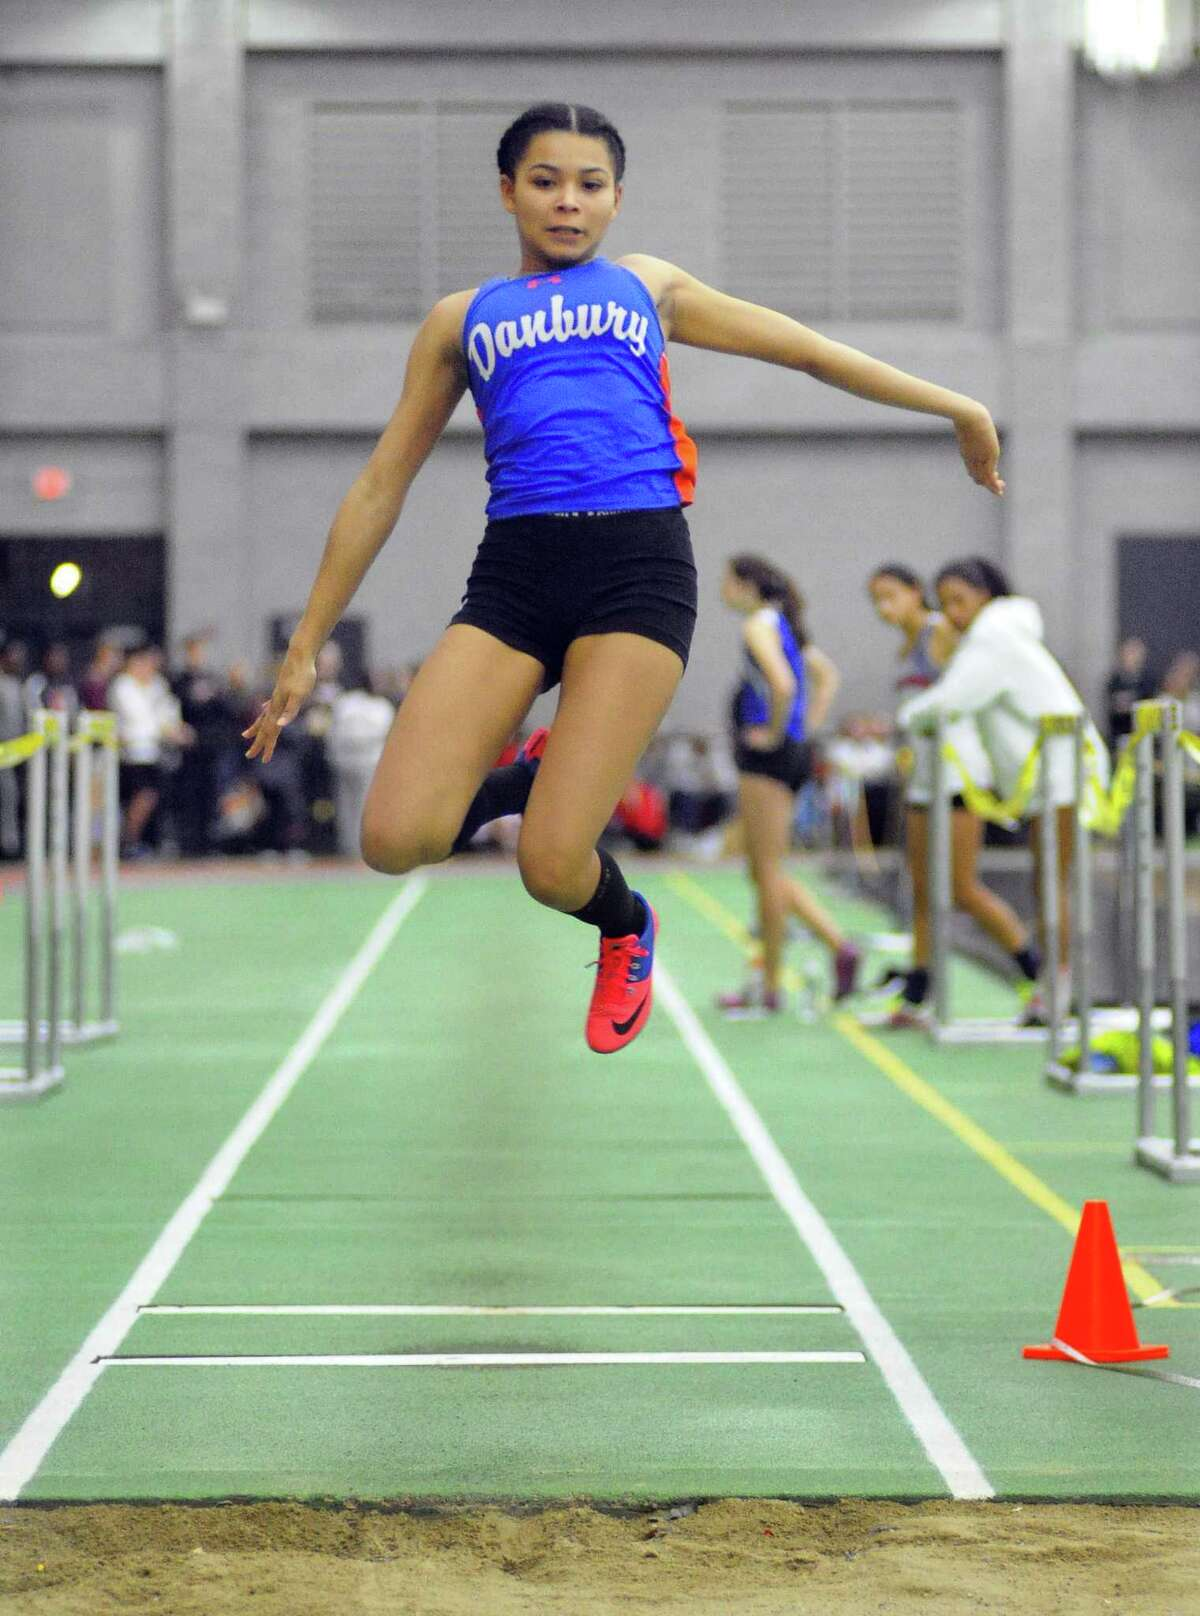 FCIAC Indoor Track and Field Championship action in New Haven, Conn., on Thursday Feb. 1, 2018.